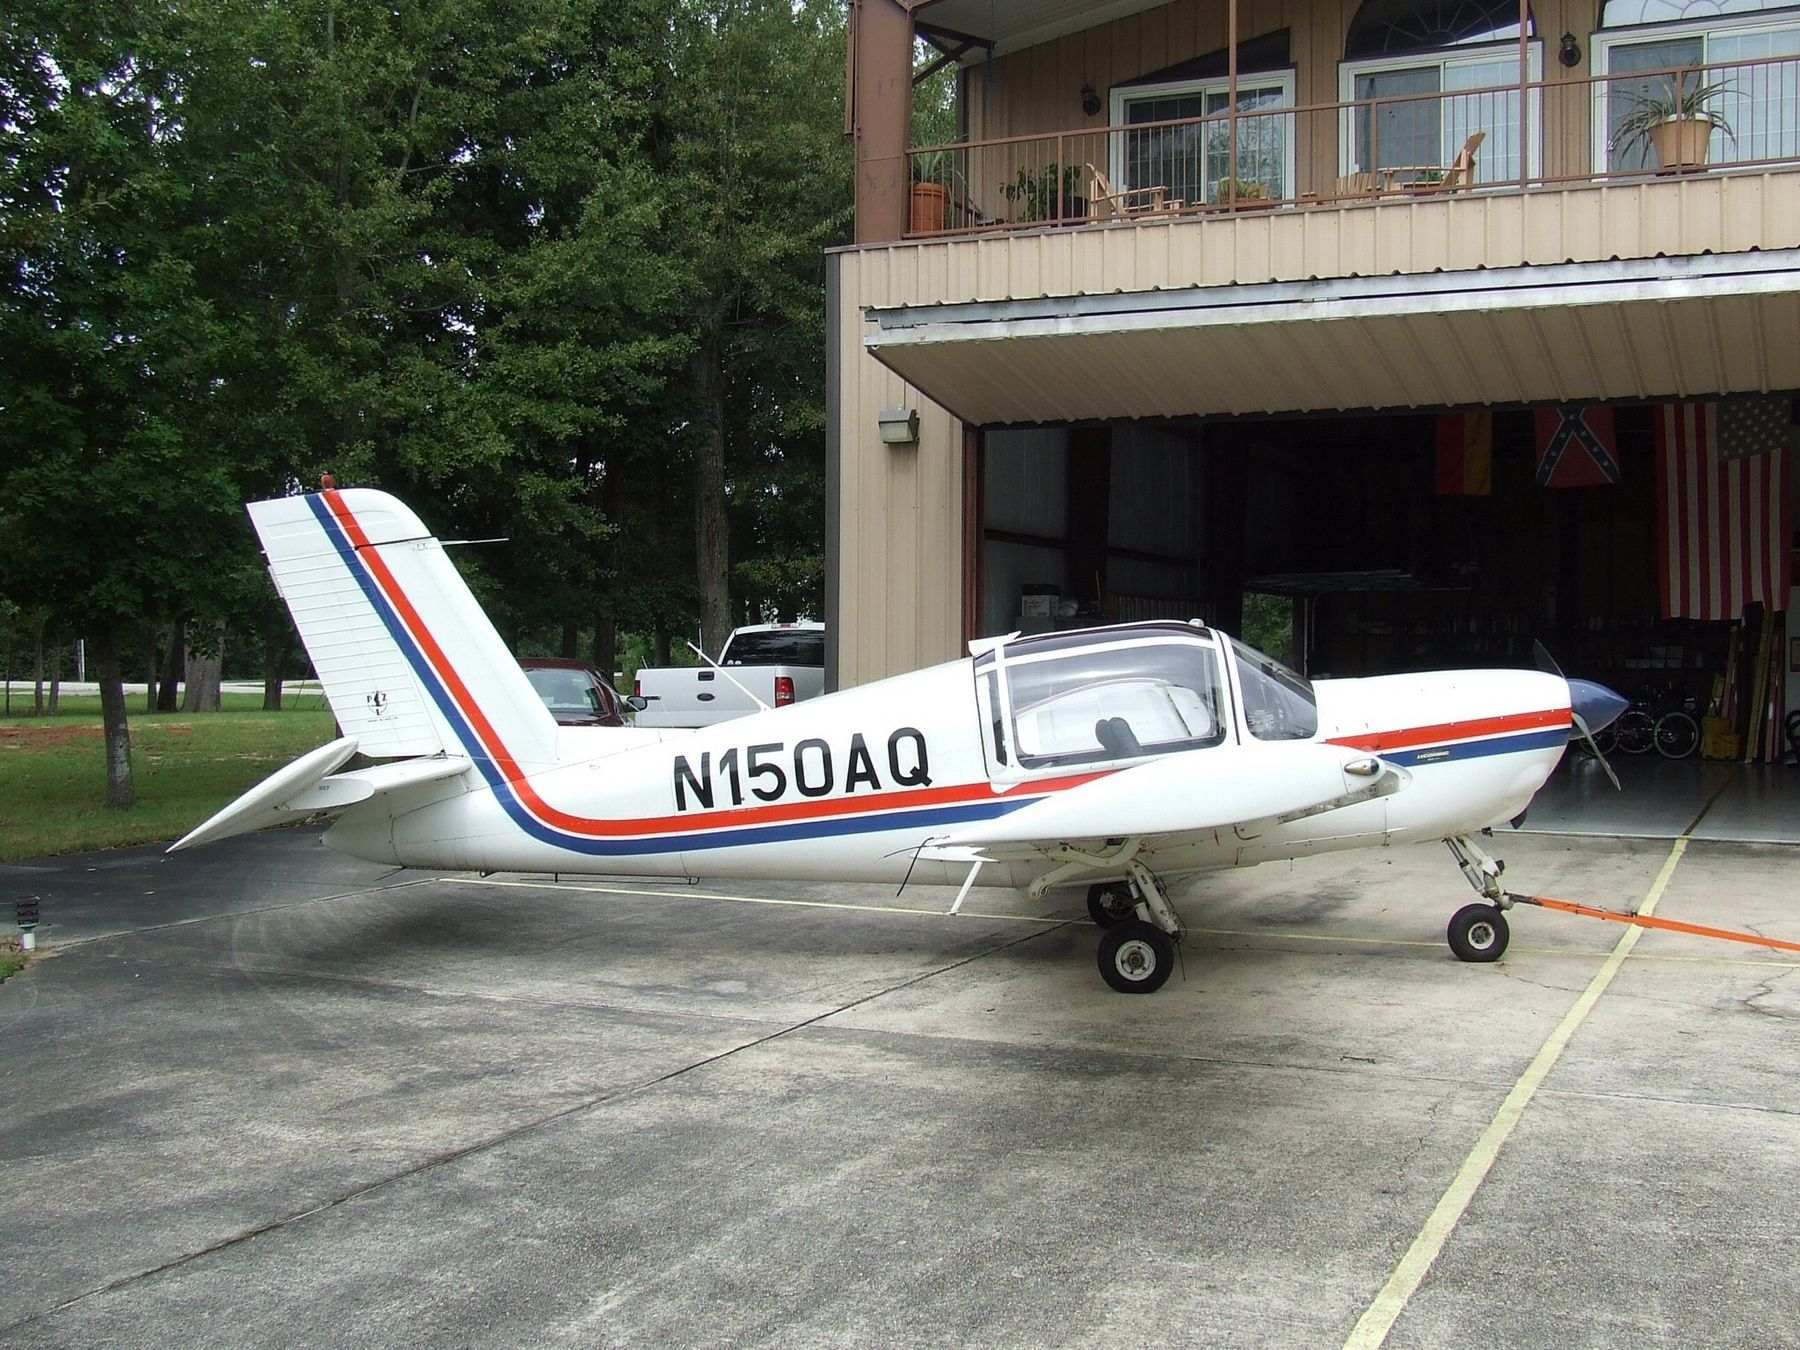 1995 PZL Koliber 150A for sale in (66Y) Diamondhead, MS USA => http://www.airplanemart.com/aircraft-for-sale/Single-Engine-Piston/1995-PZL-Koliber-150A/8893/